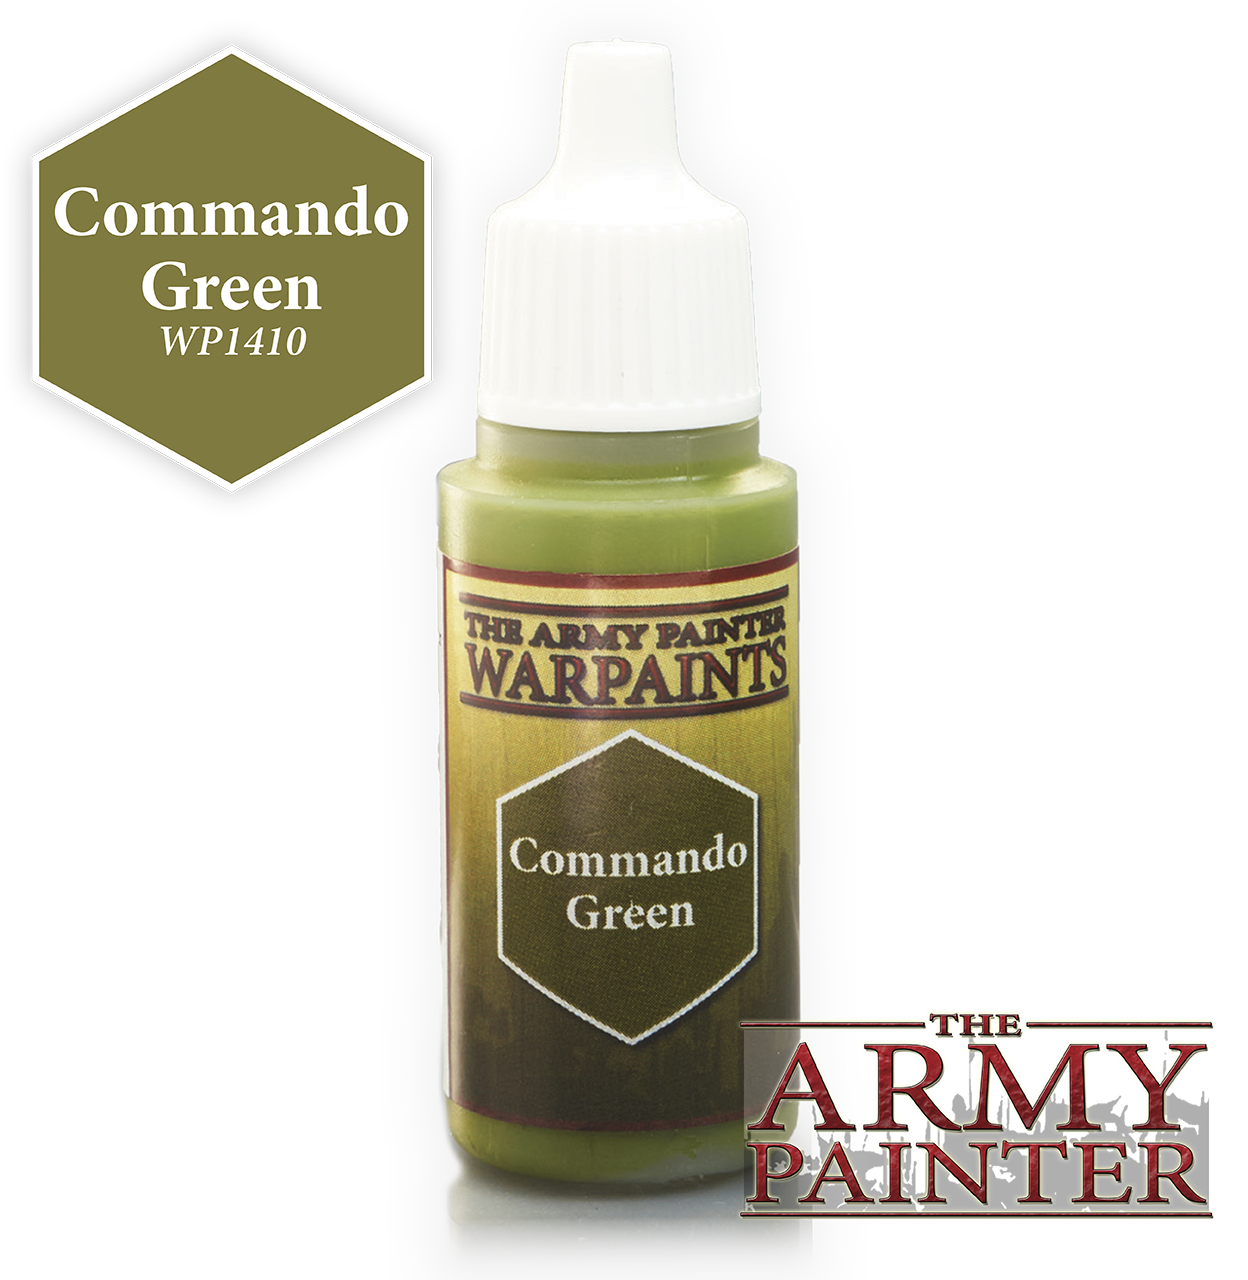 Commando Green - Army Painter Warpaints WP1410